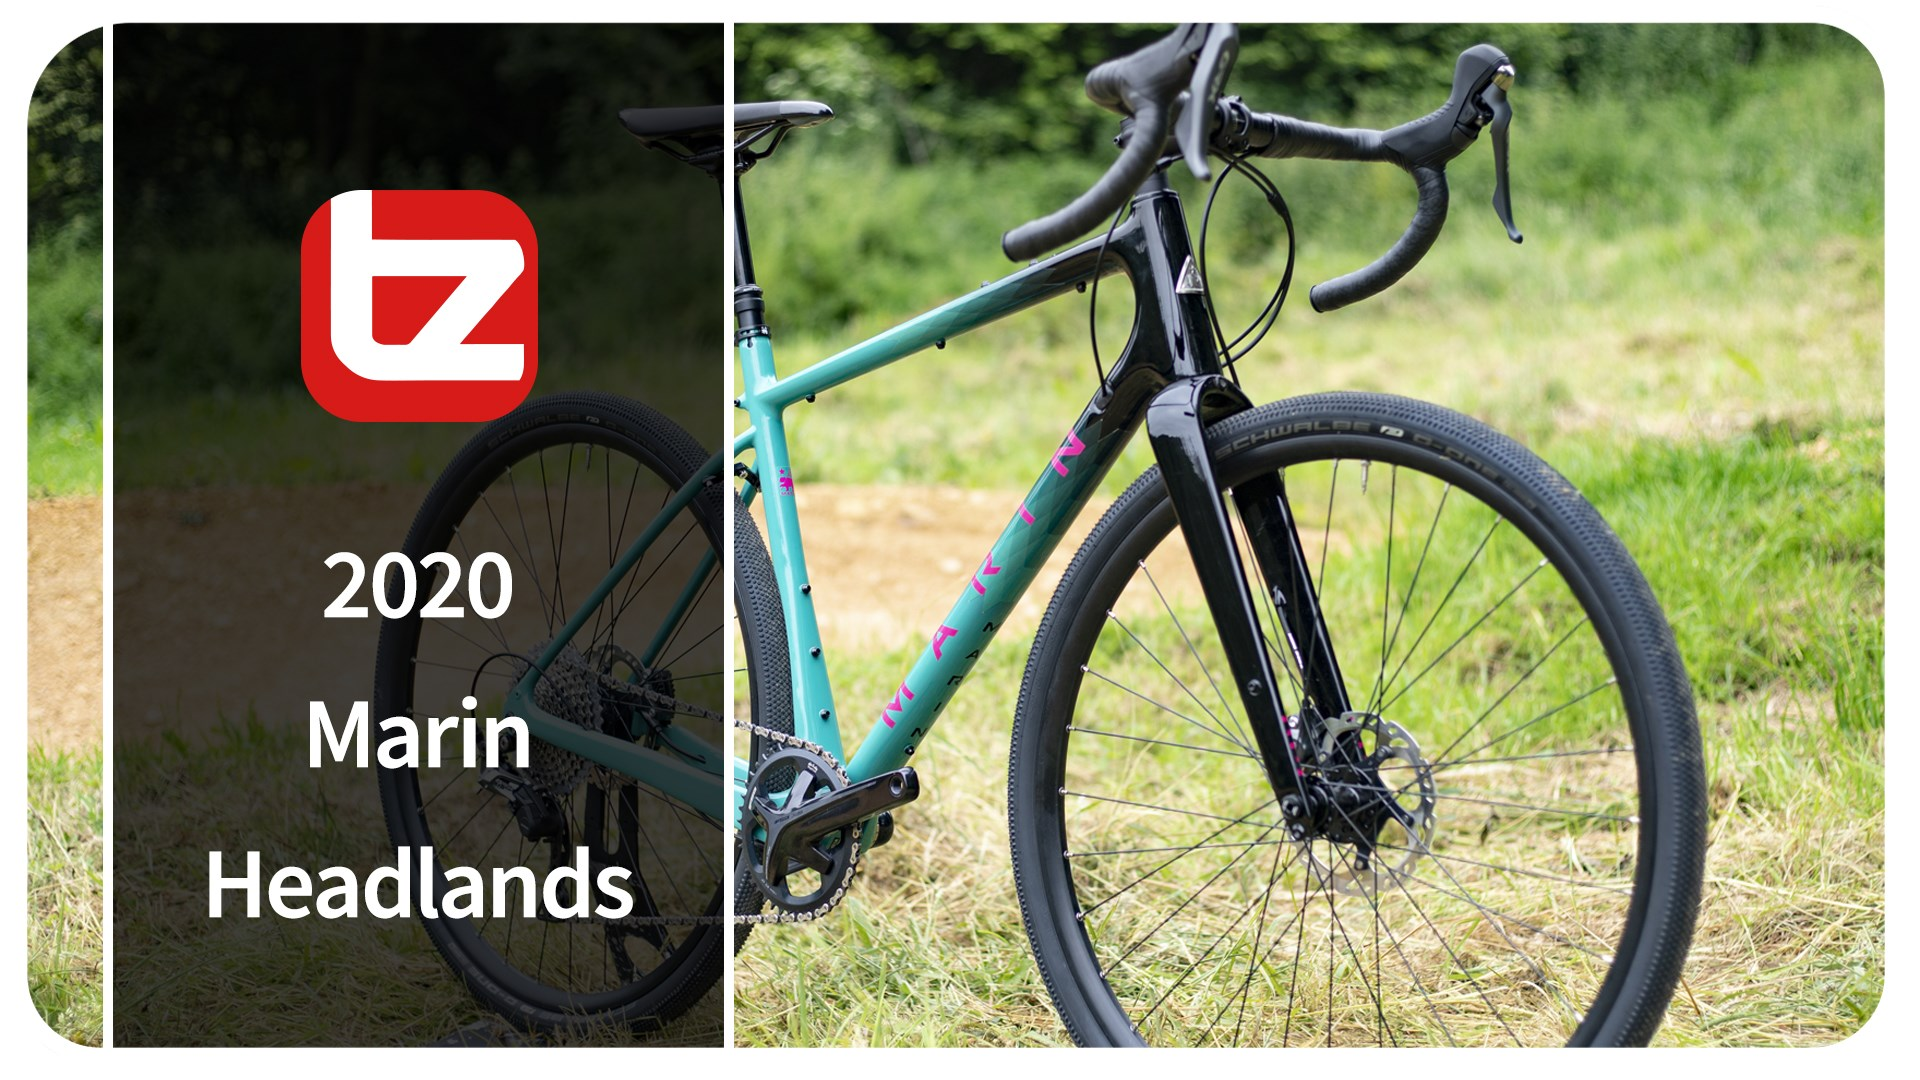 2020 Marin Headlands | First Look | Tredz Bikes